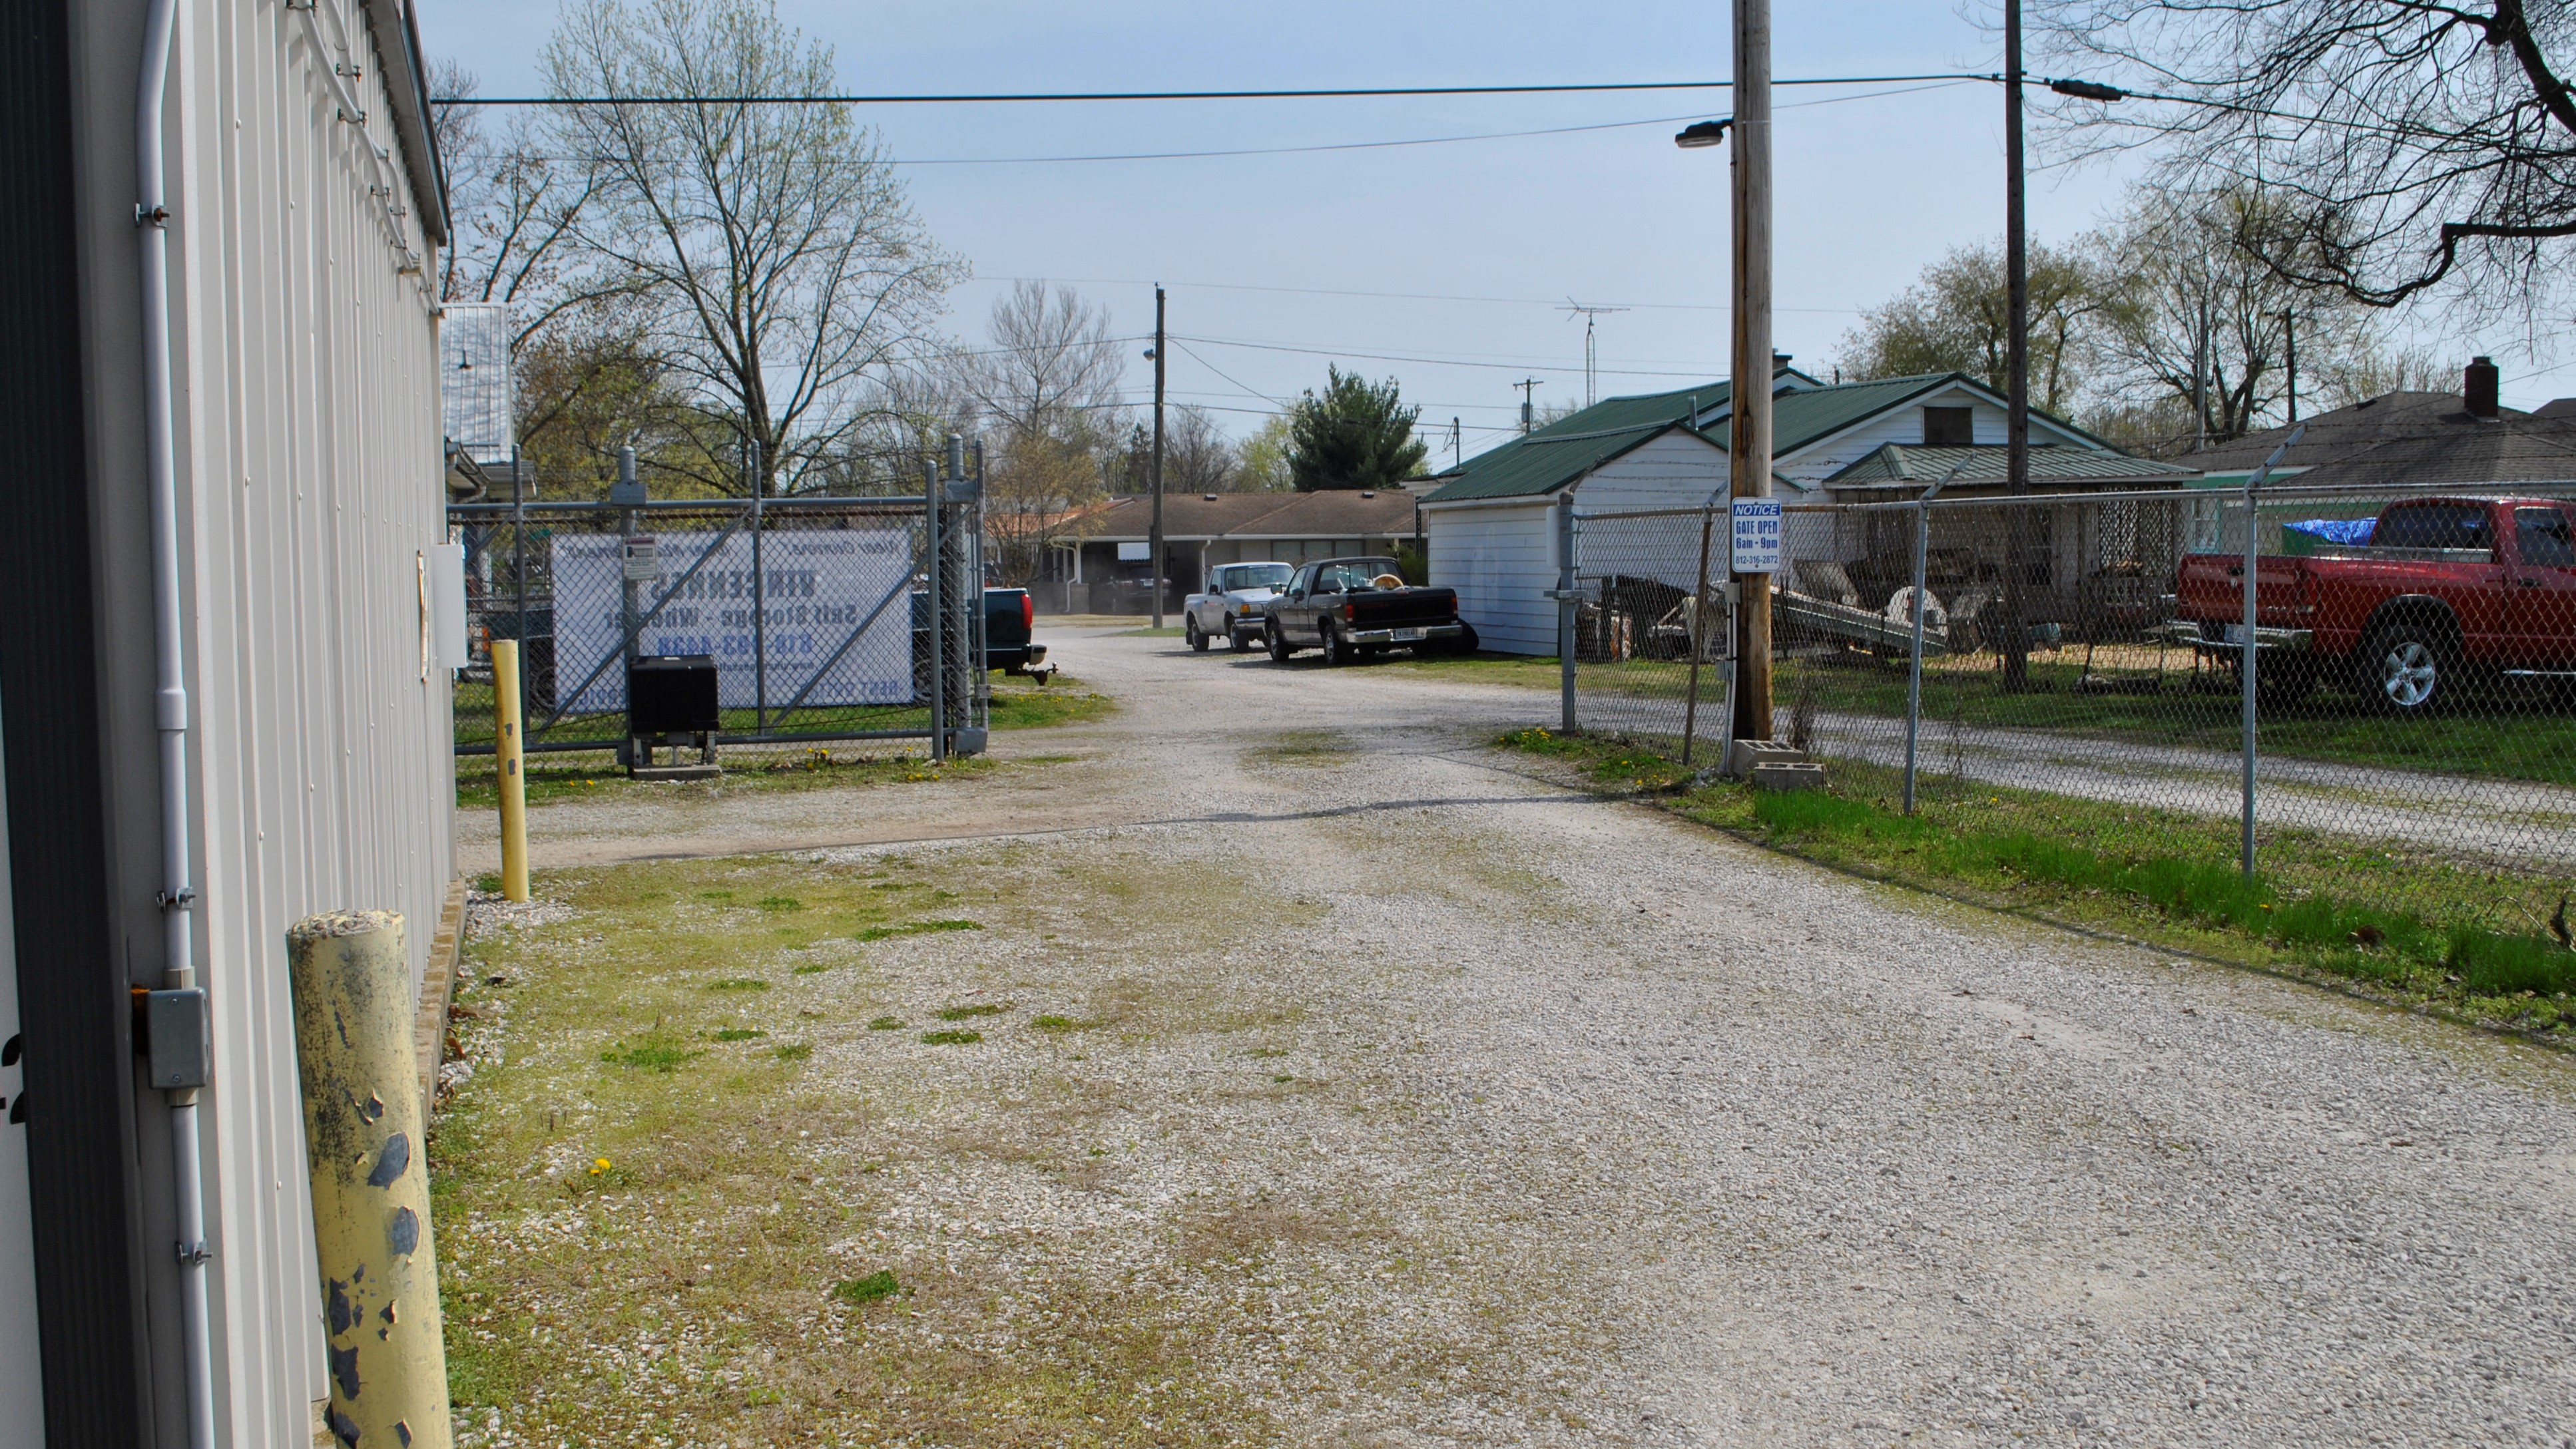 entrance to storage facility with front gate open